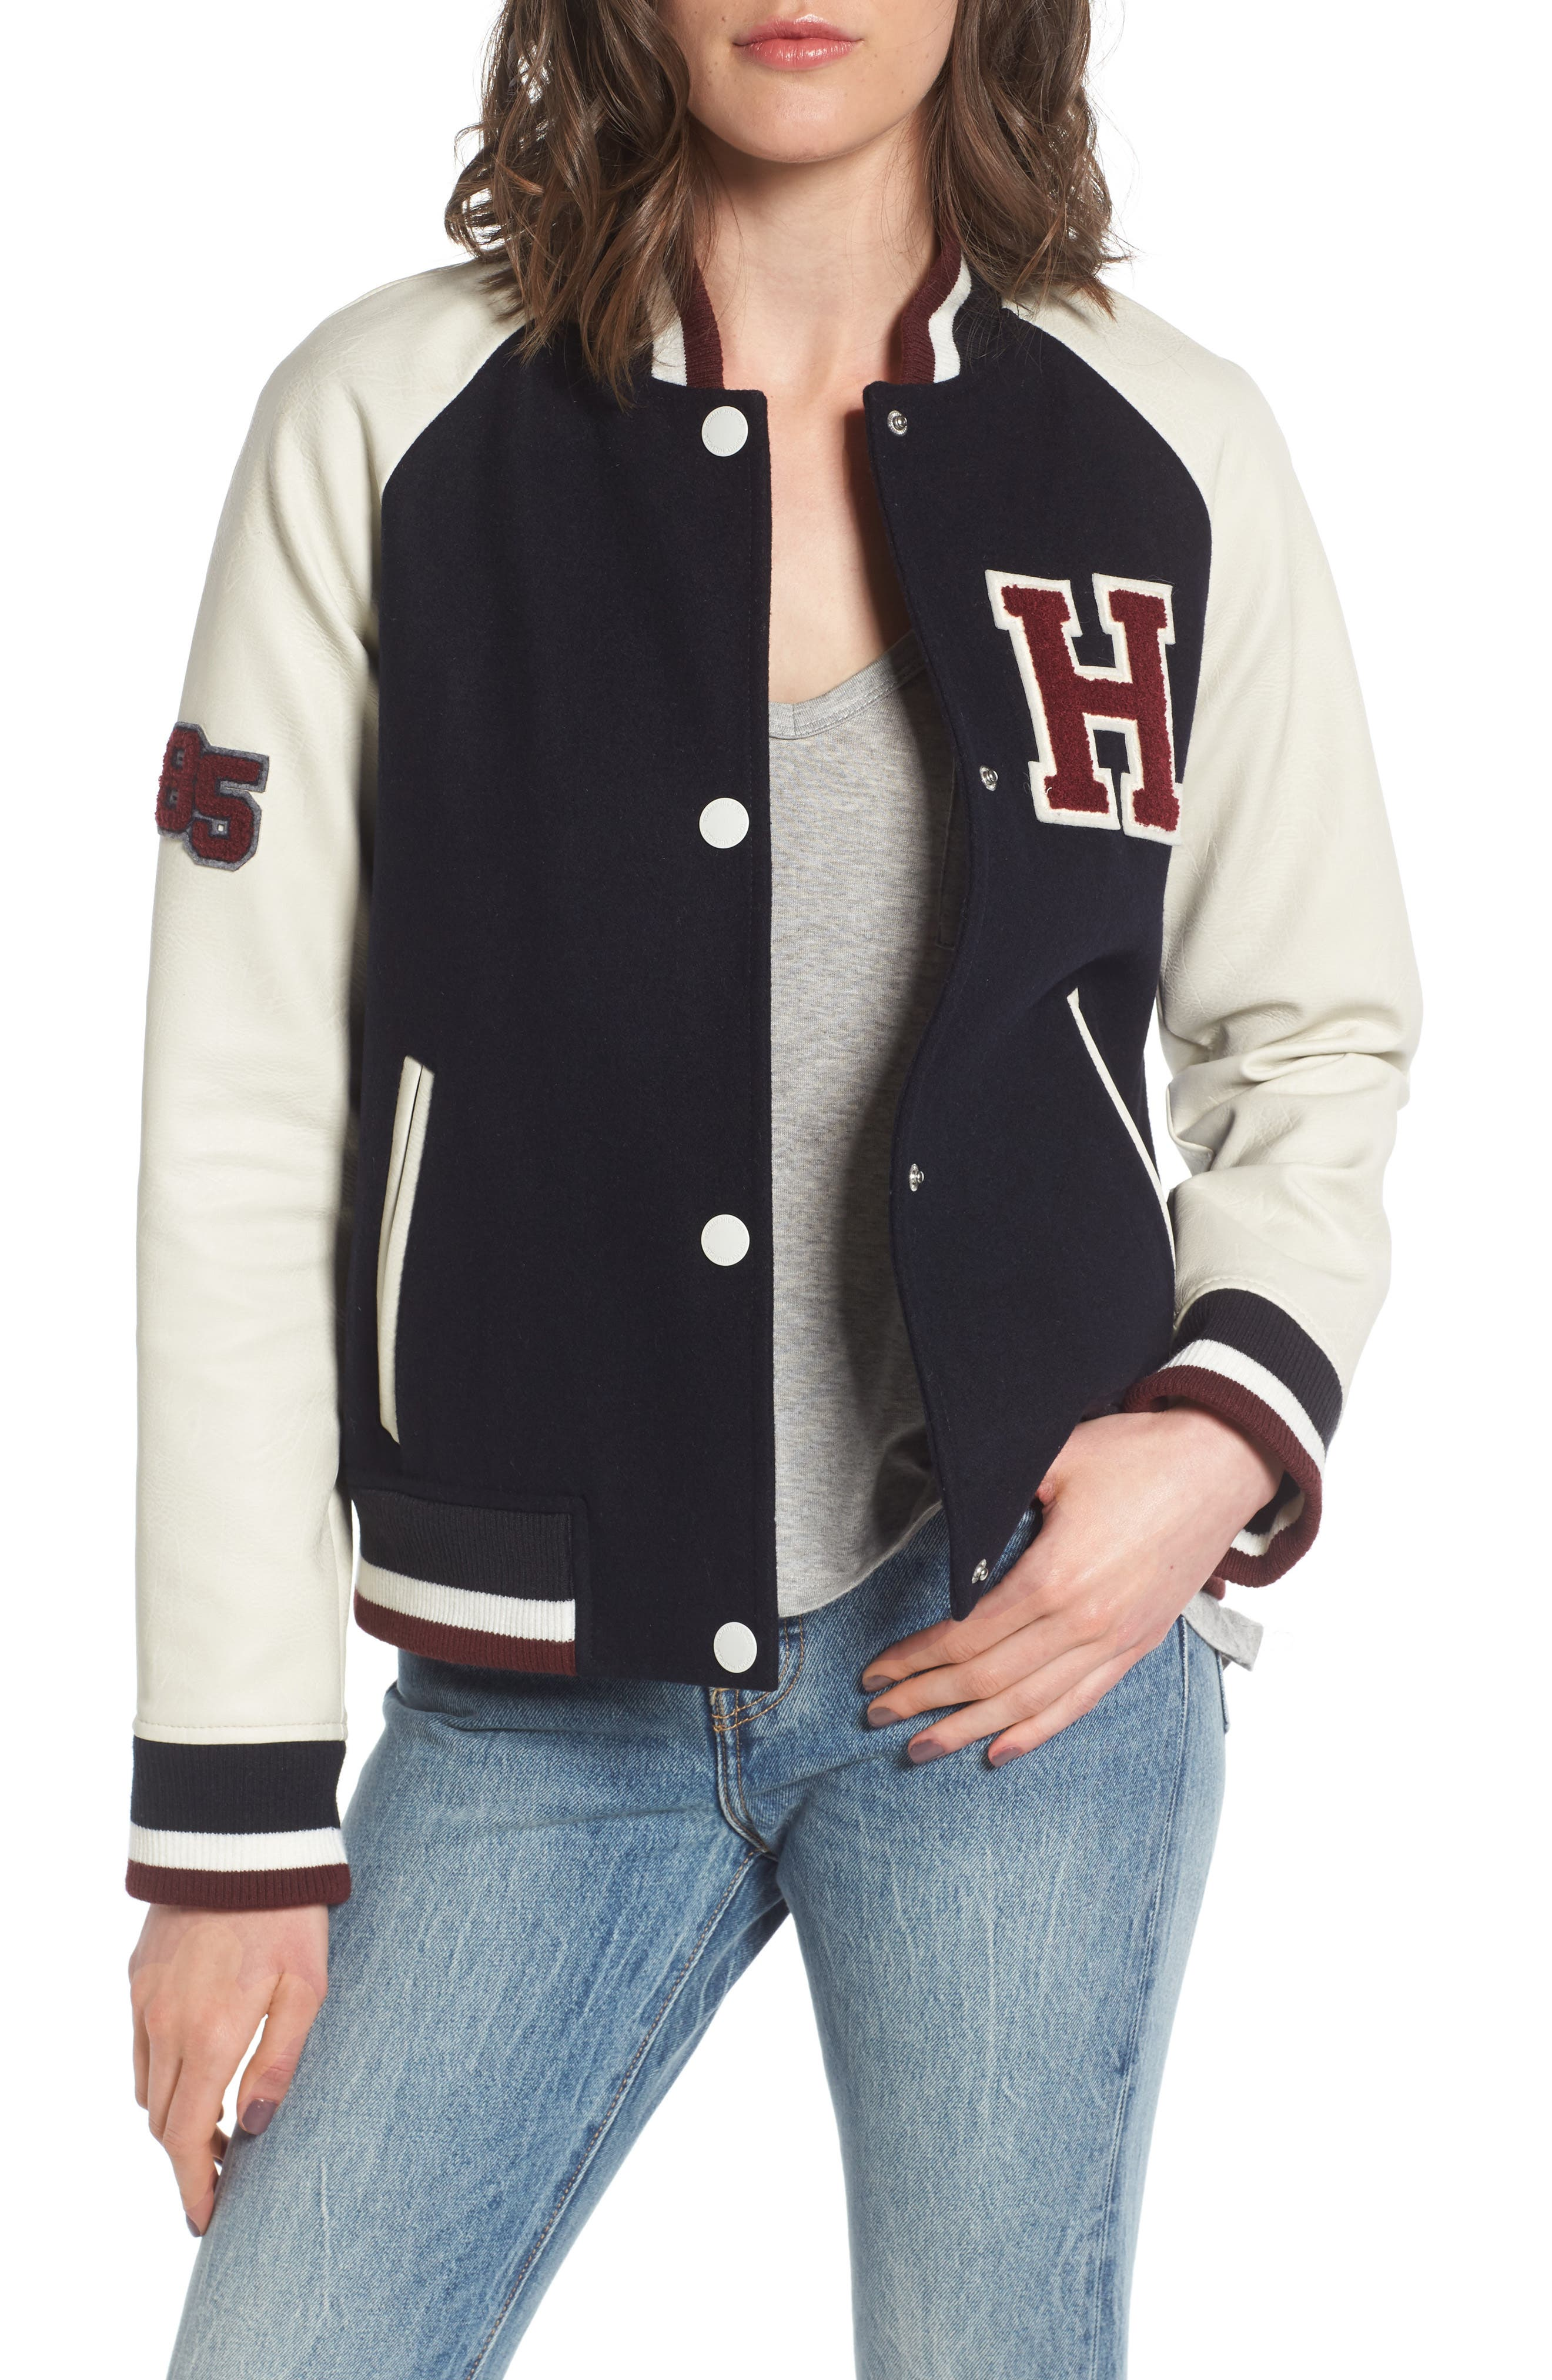 Tommy Hilfiger Mixed Media Varsity Jacket